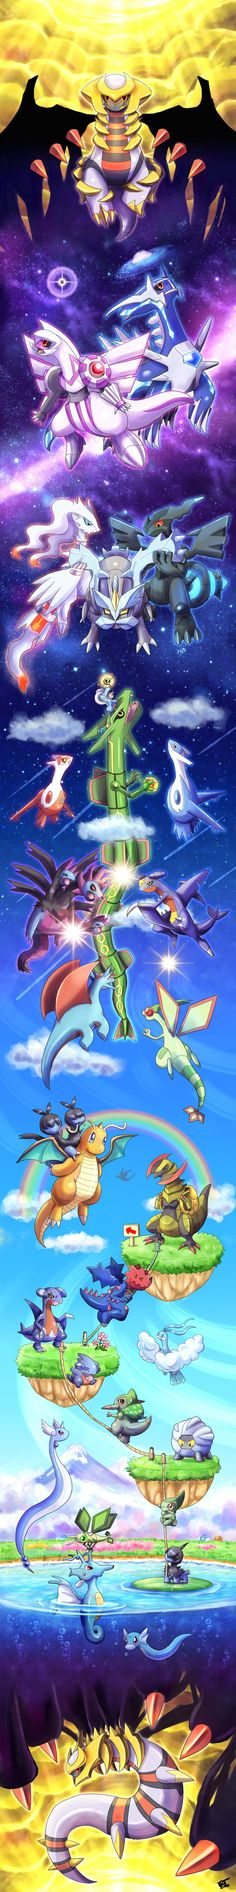 Awesome dragon pokemon pic, though it is outdated lol